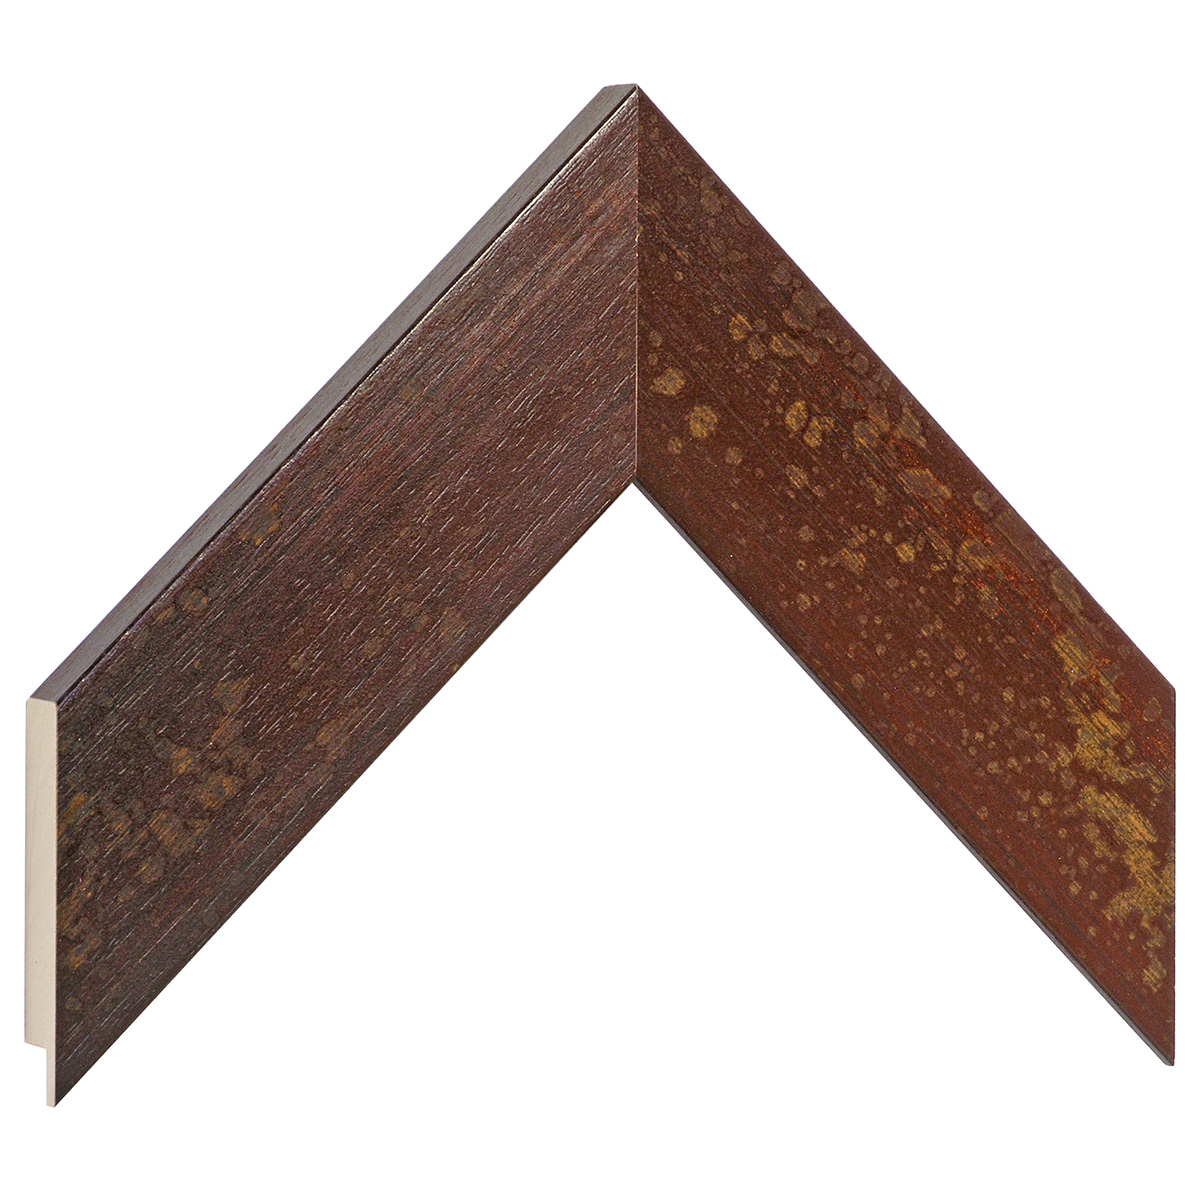 Moulding ayous 49mm - distressed mahogany finish